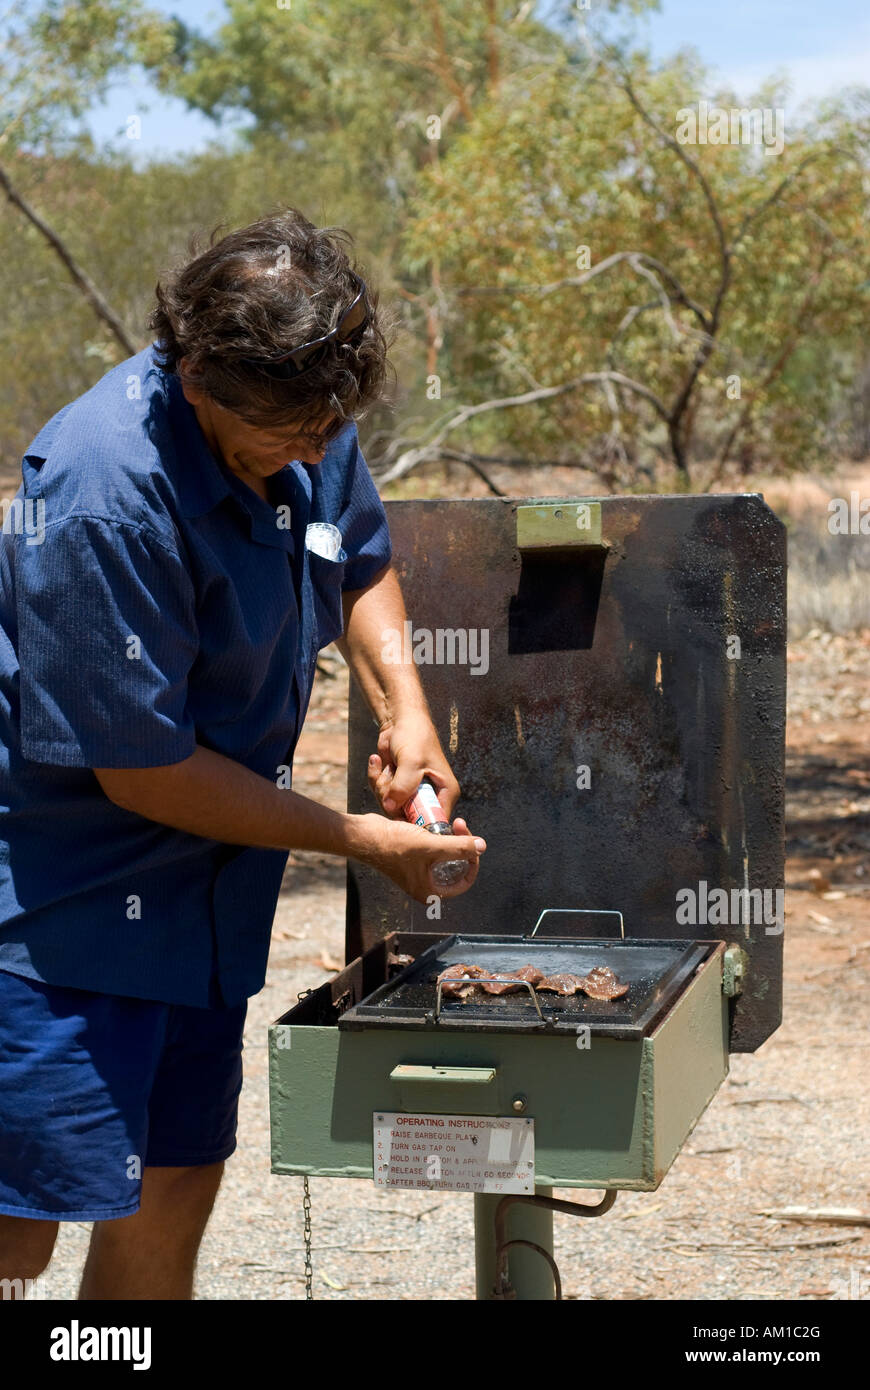 Bush walk with half aboriginal Bob Tailer, barbecue area, Simpsons Gap, West Mac Donell National Park, Alice Springs, - Stock Image